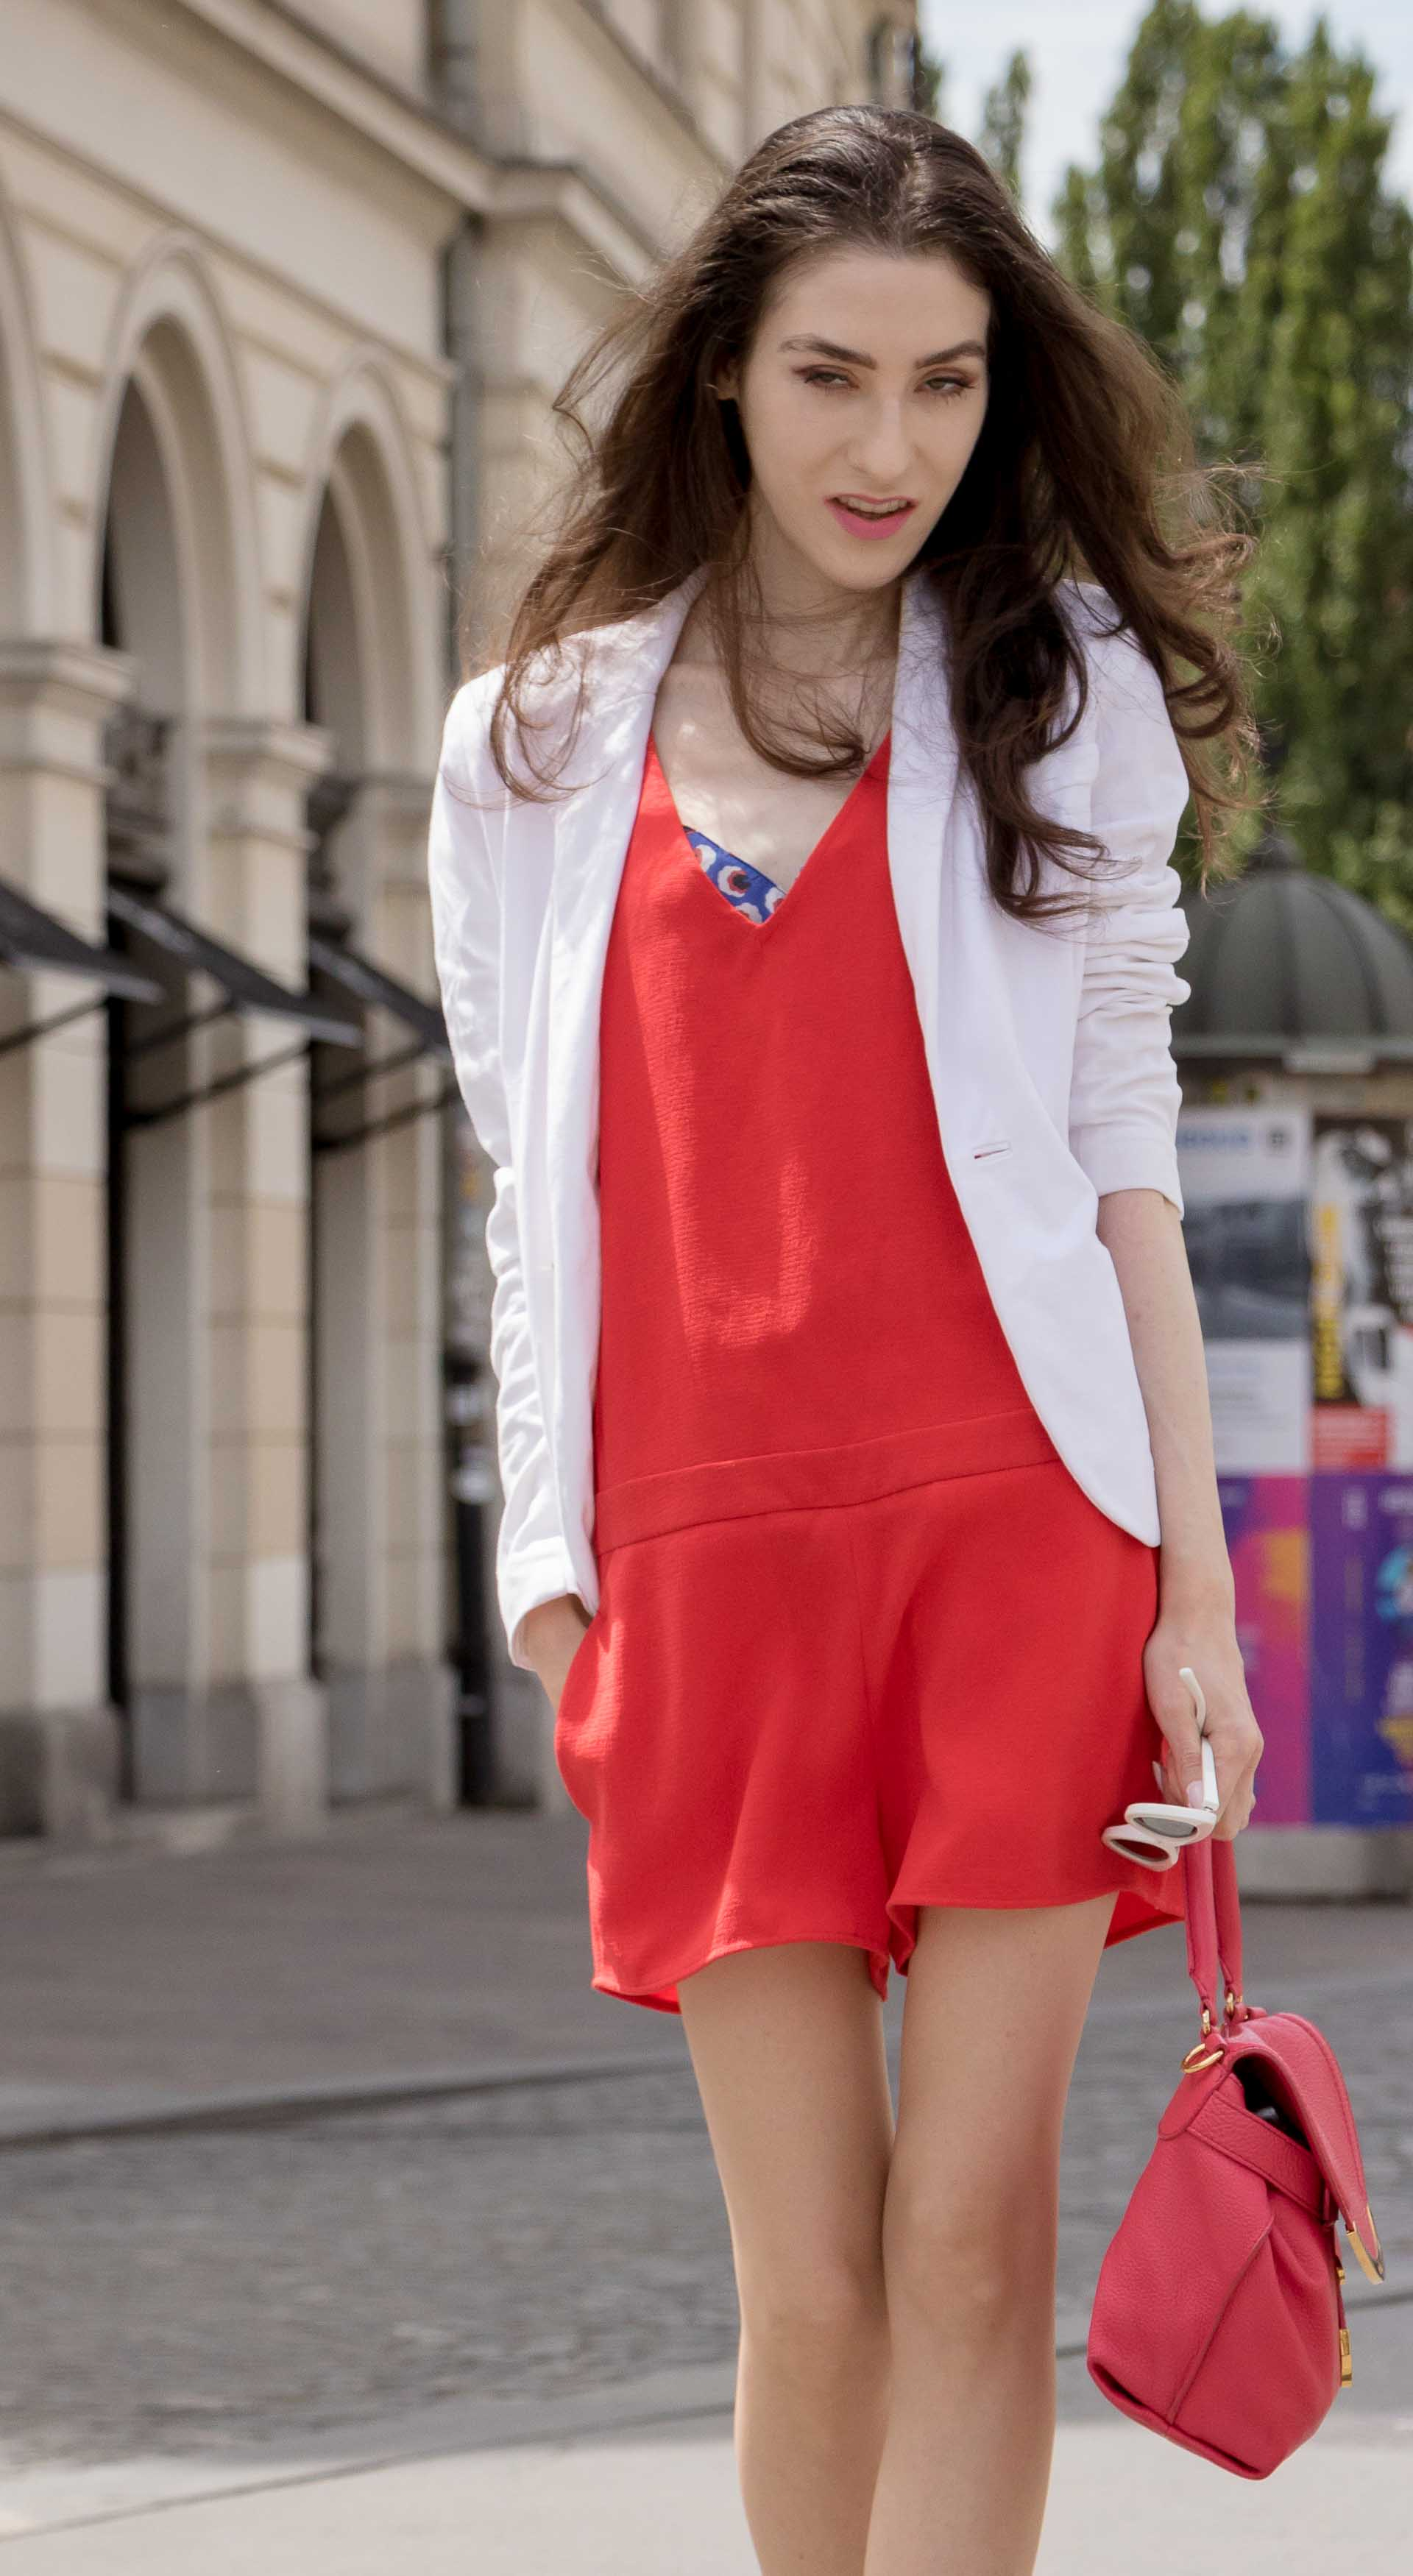 Veronika Lipar Fashion Blogger of Brunette from Wall Street wearing red playsuit, white blazer, Adam Selman x Le Specs white cat eye Lolita sunglasses, pink top handle See by Chloe bag, Gianvito Rossi plexi pumps on summer day in Ljubljana